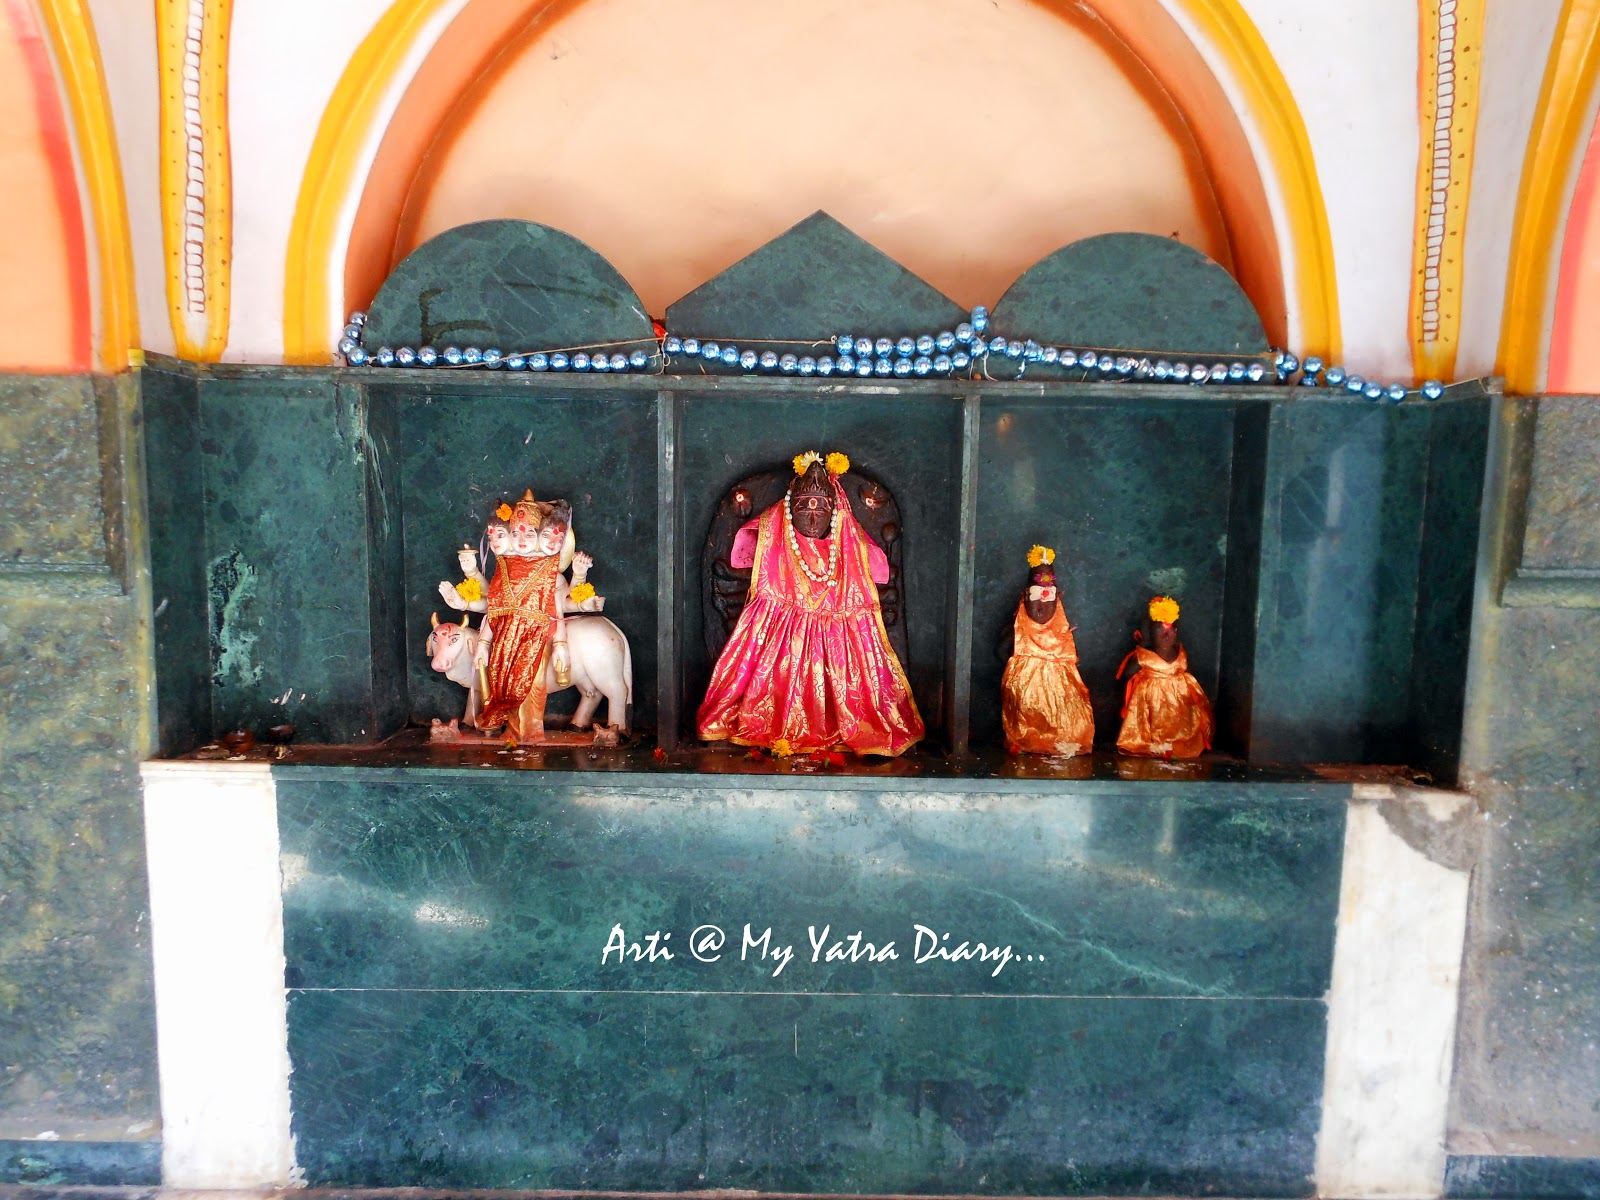 Other deities at the Bhairavnath temple, Saswad, Pune, Maharashtra